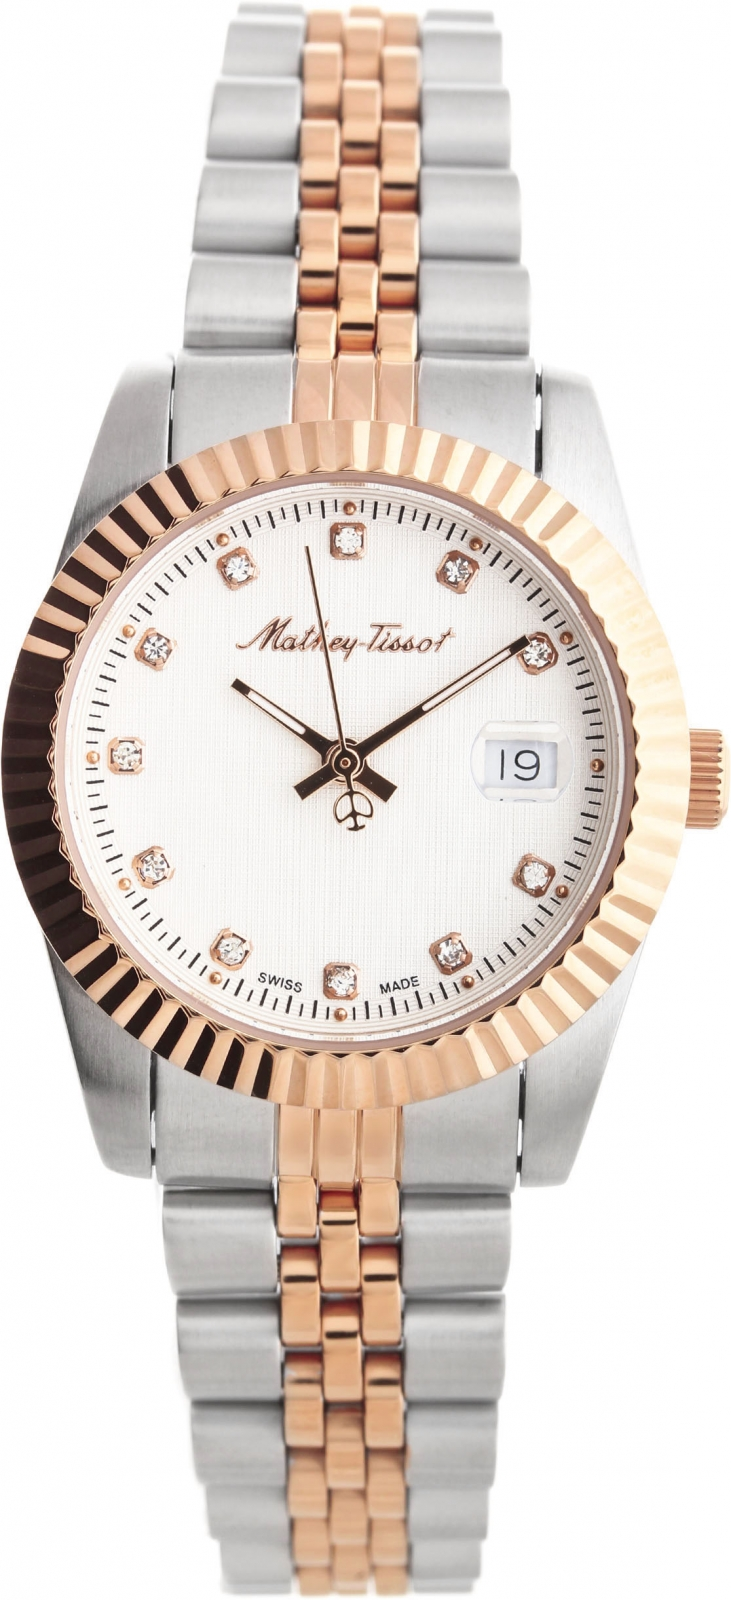 Mathey-Tissot Rolly D810RA mathey tissot rolly h810an